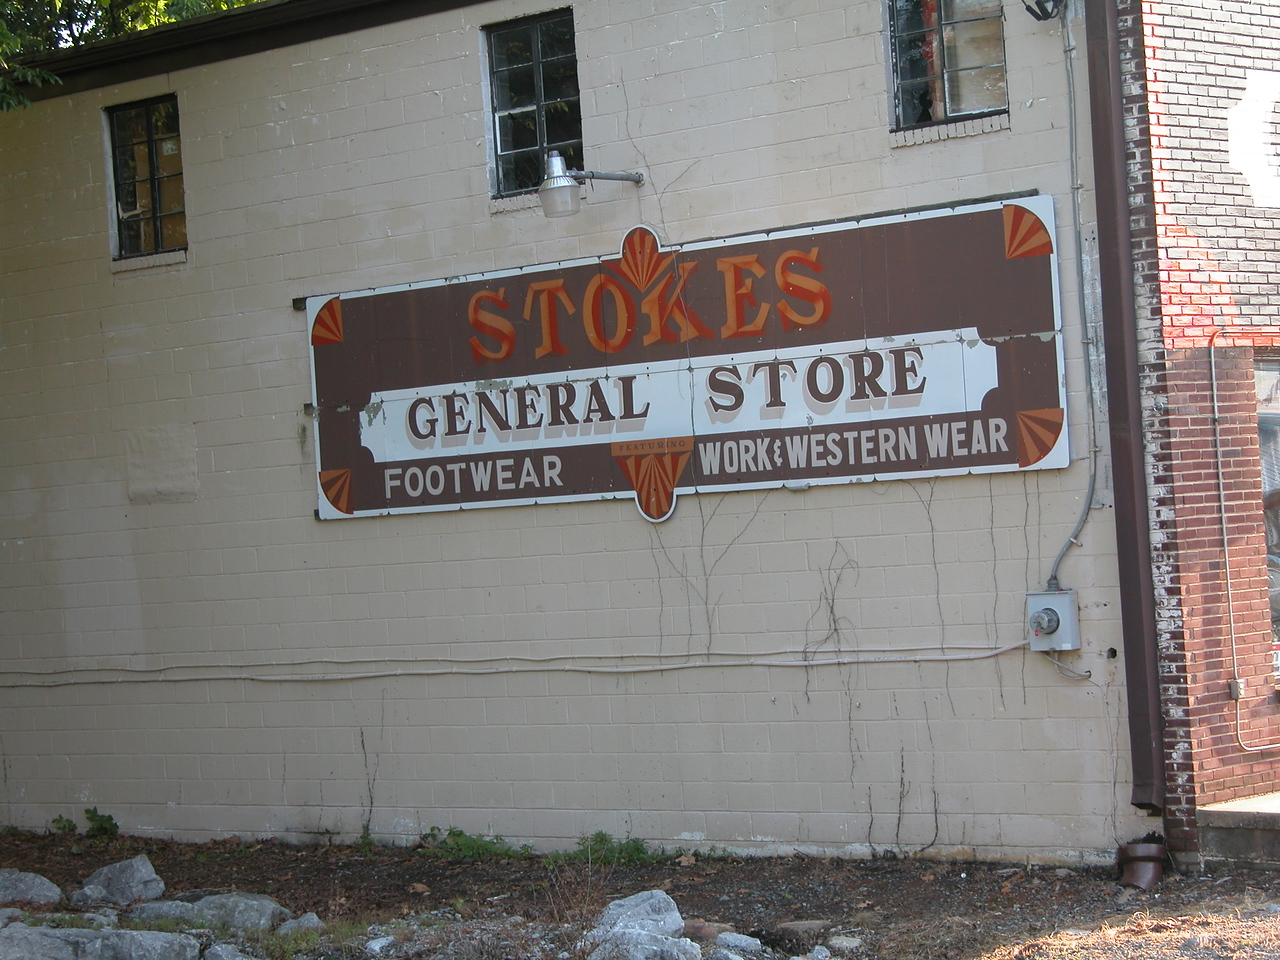 Stokes General store - I just like the sign and the colors.